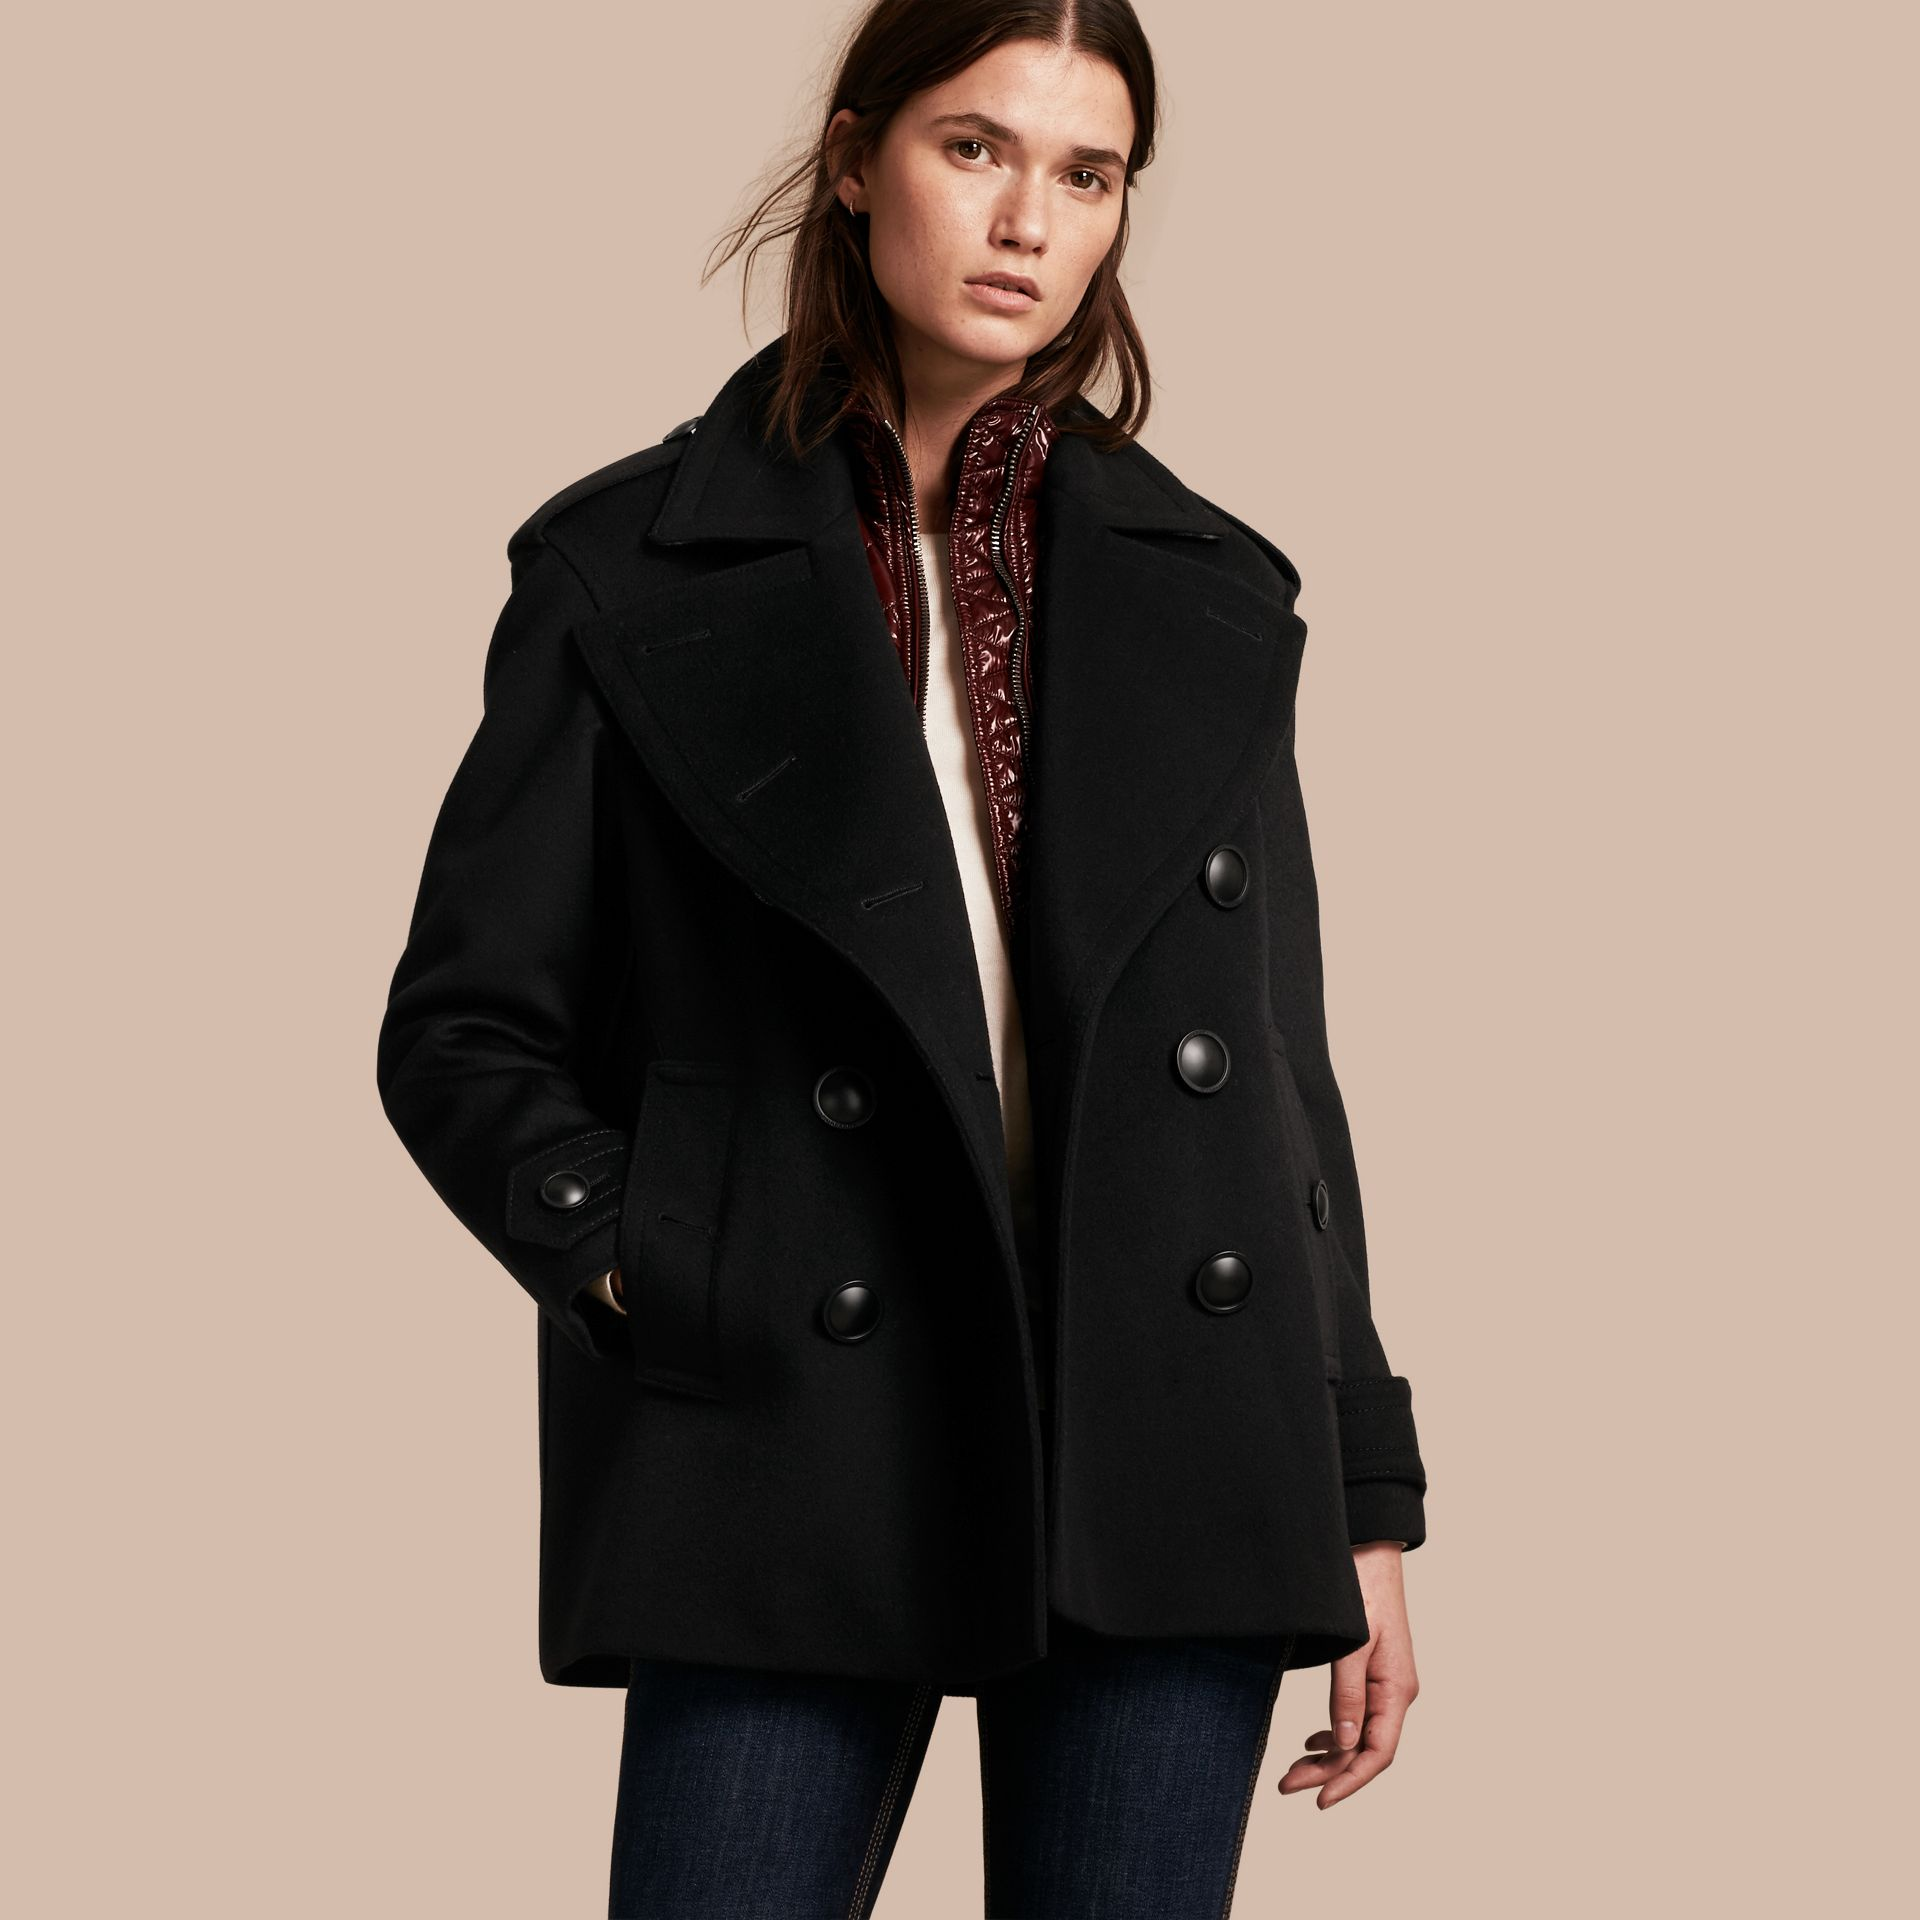 Black Wool Cashmere Pea Coat with Detachable Warmer - gallery image 1